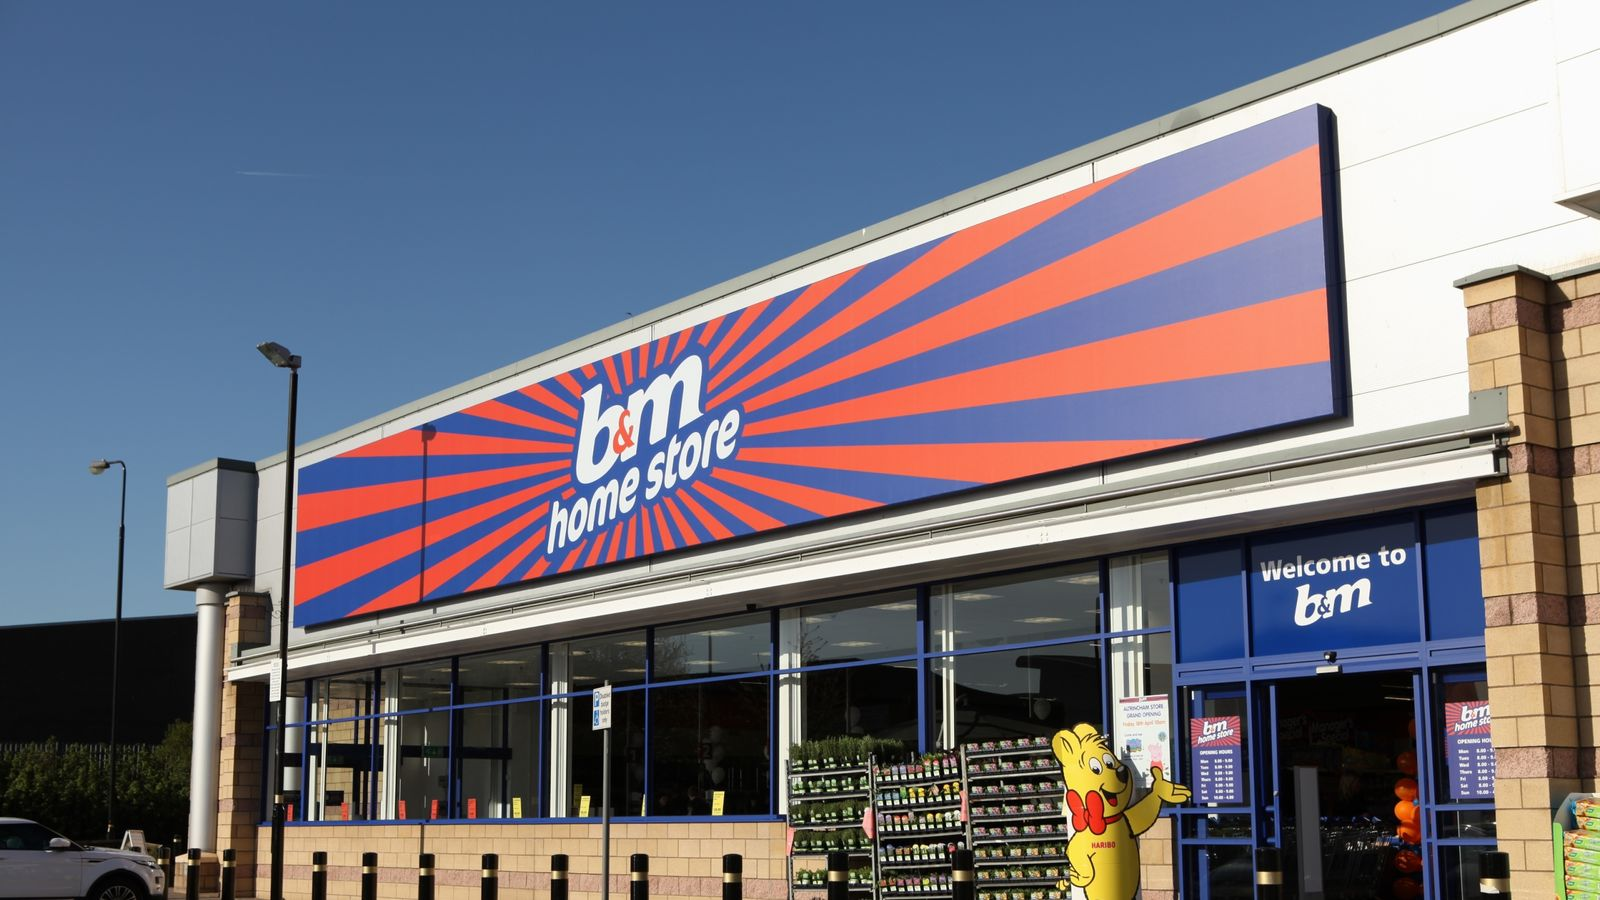 B&M to open dozens of new shops as other chains struggle